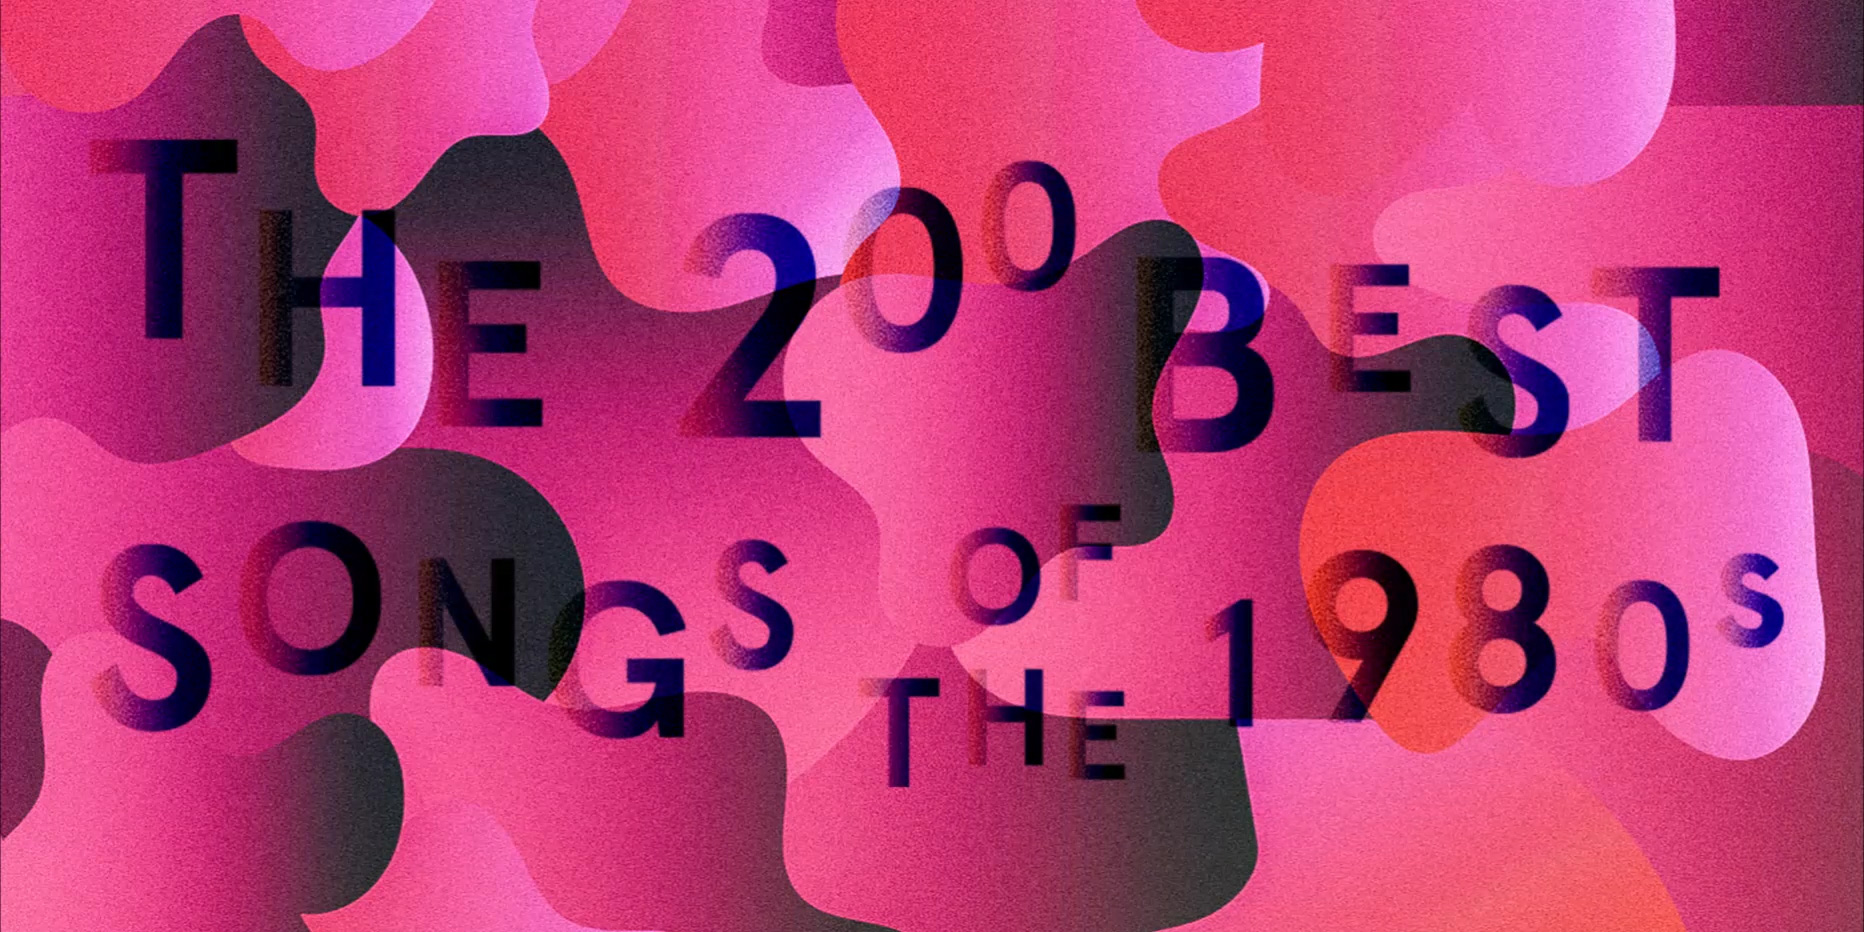 the 200 best songs